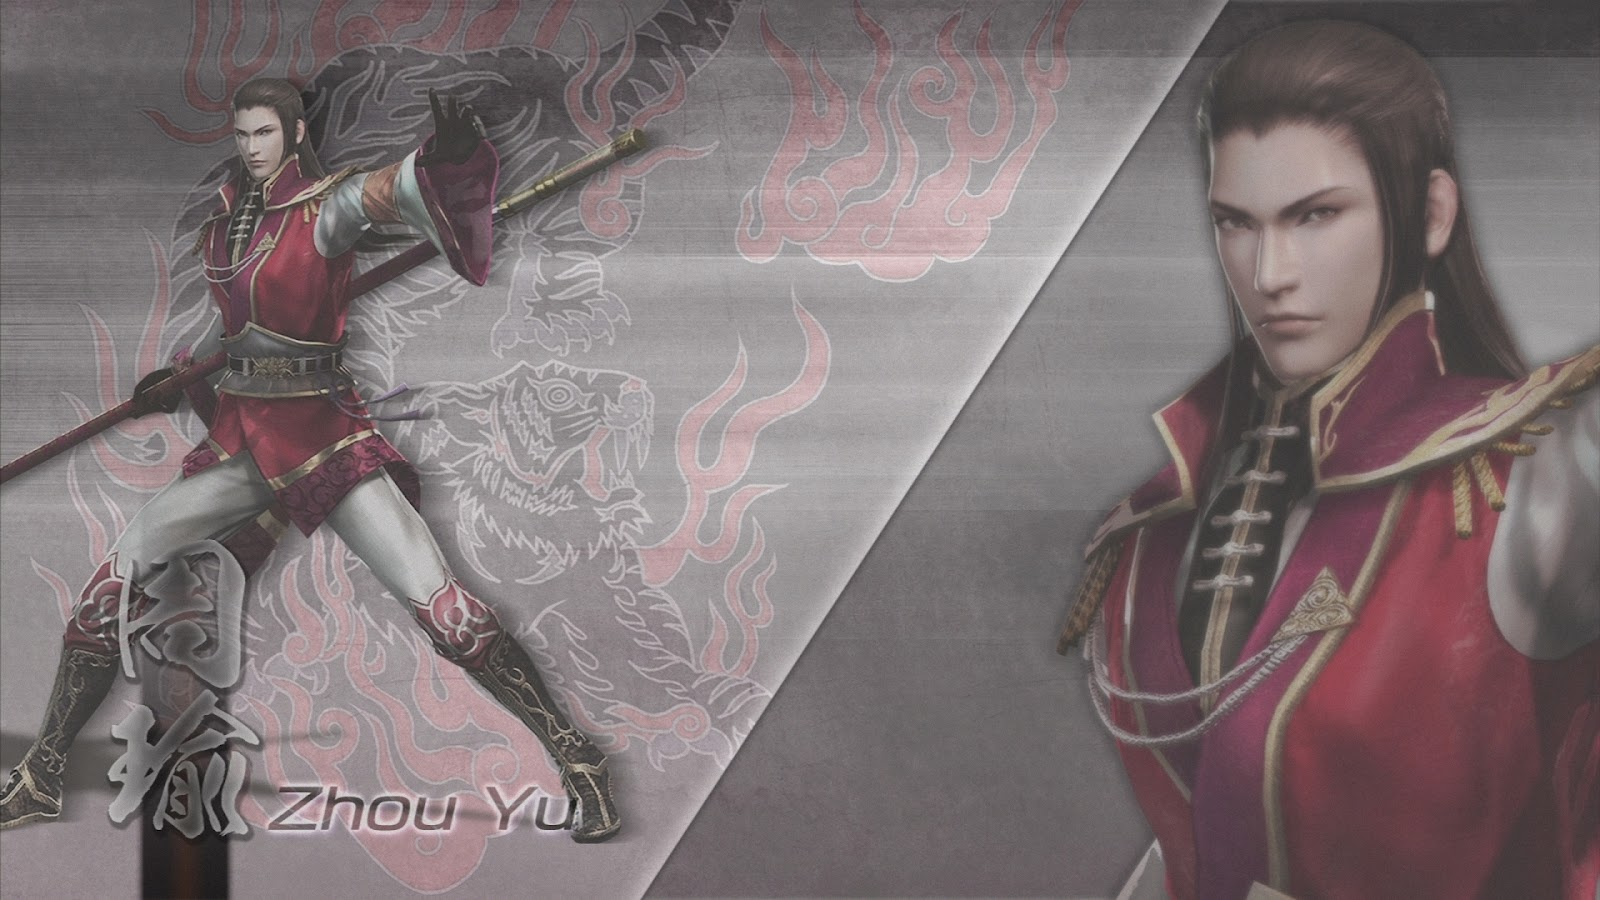 http://1.bp.blogspot.com/-xRCvpjcqhQA/UBVT4KBLAQI/AAAAAAAAFAM/Fg7l1gSgeZk/s1600/dynasty+warriors+7+wallpapers+12.jpg